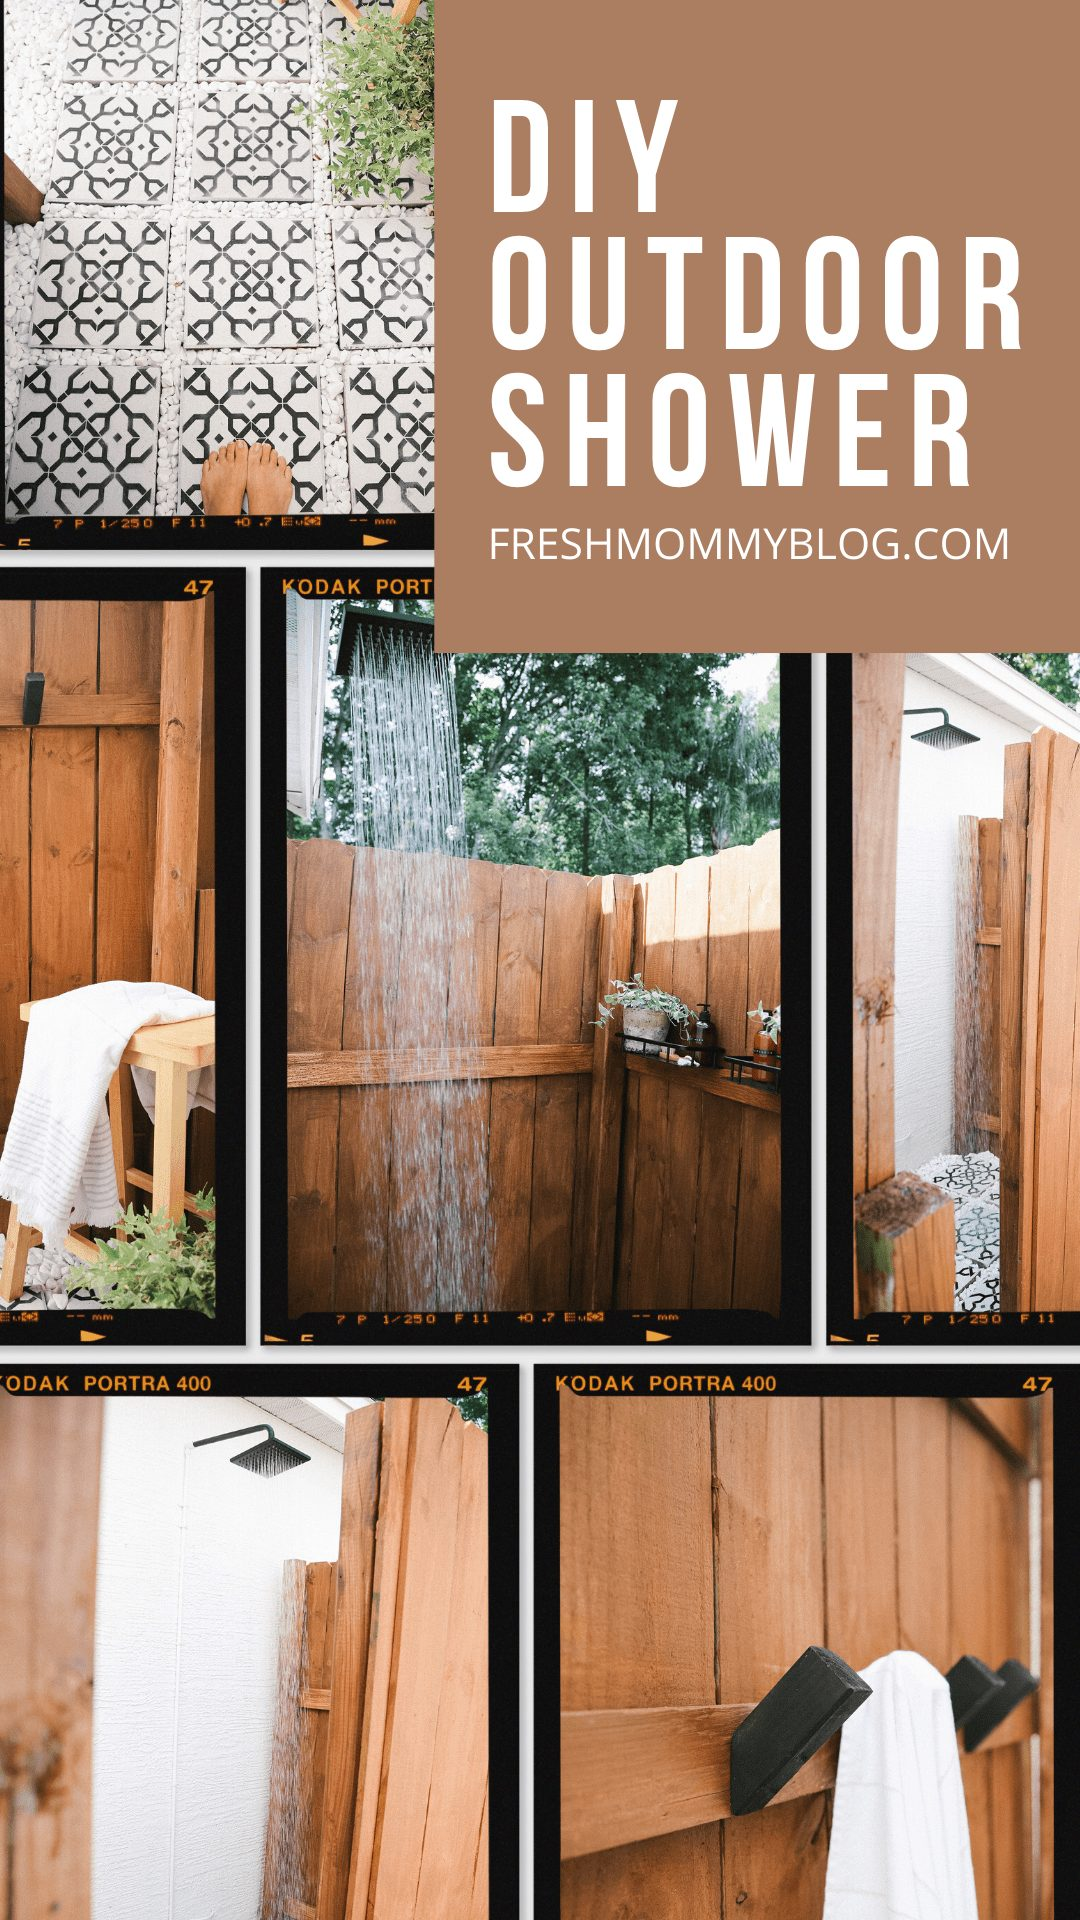 DIY Outdoor Shower Ideas on a Budget for the Ultimate Backyard Oasis   DIY Outdoor Shower by popular Florida DIY blog, Fresh Mommy Blog: Pinterest image of a DIY outdoor shower.